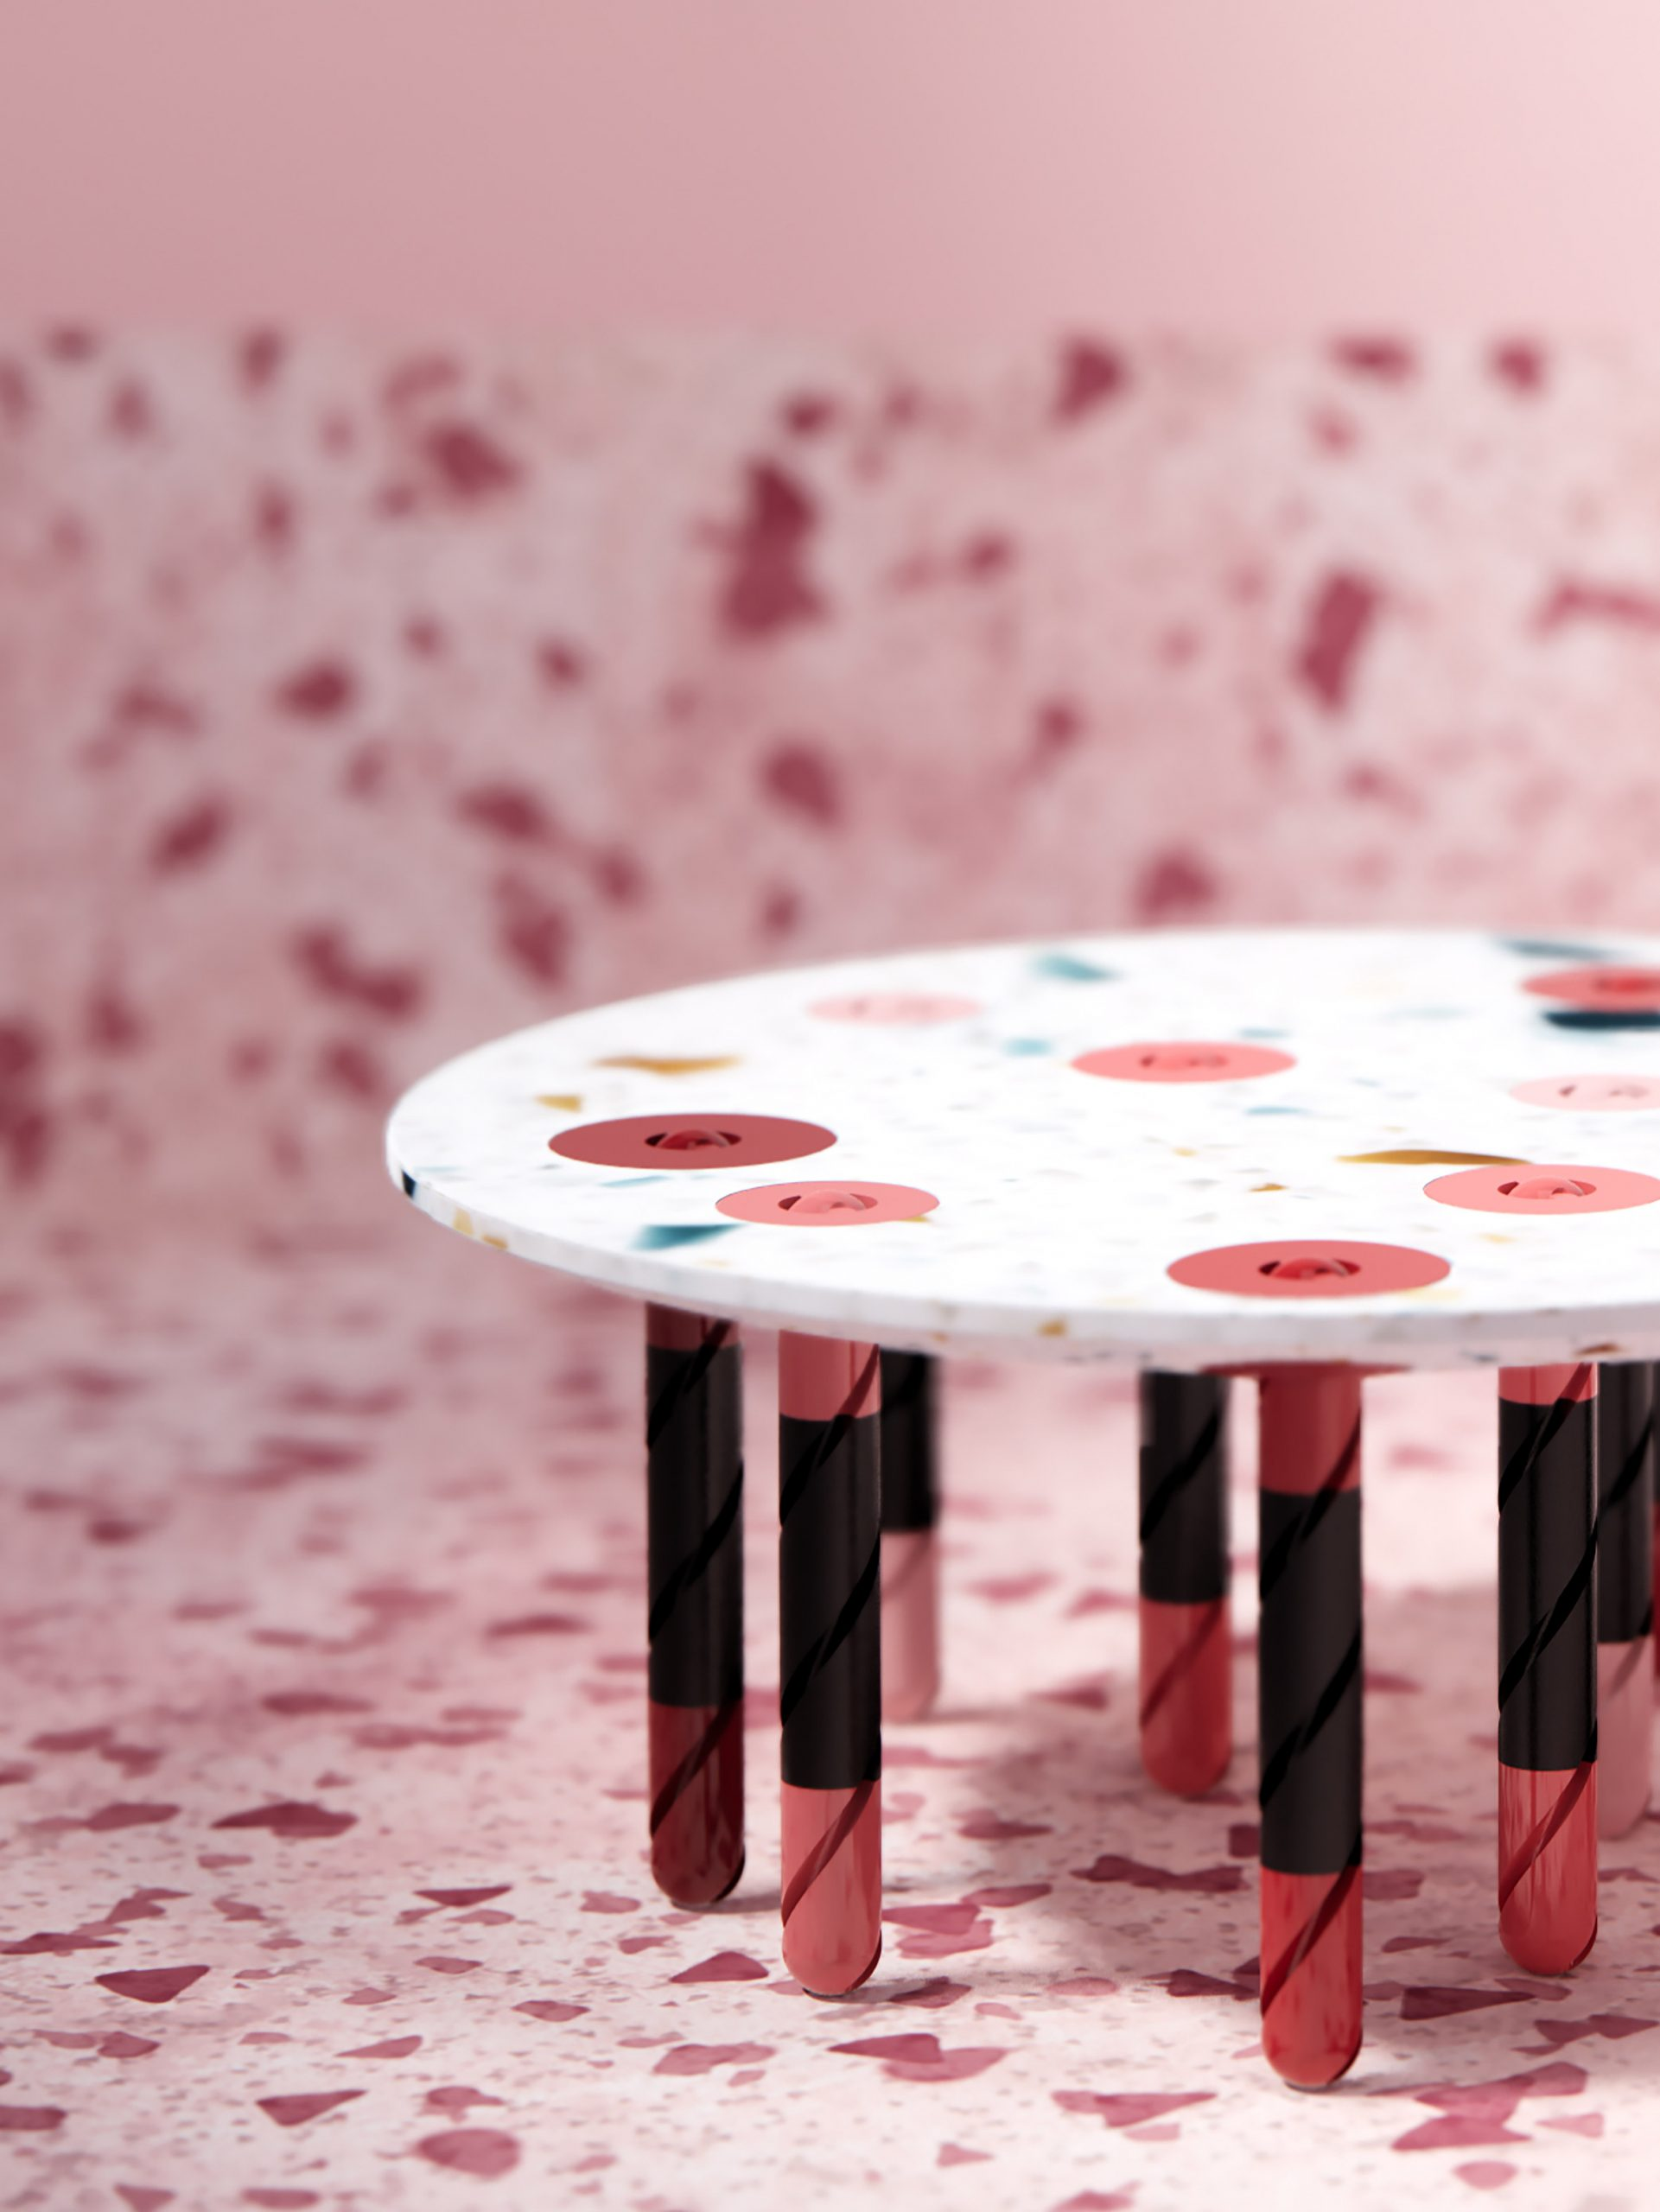 Heracles coffee table and dumbbell hybrid from Furfit collection by H-O-TT